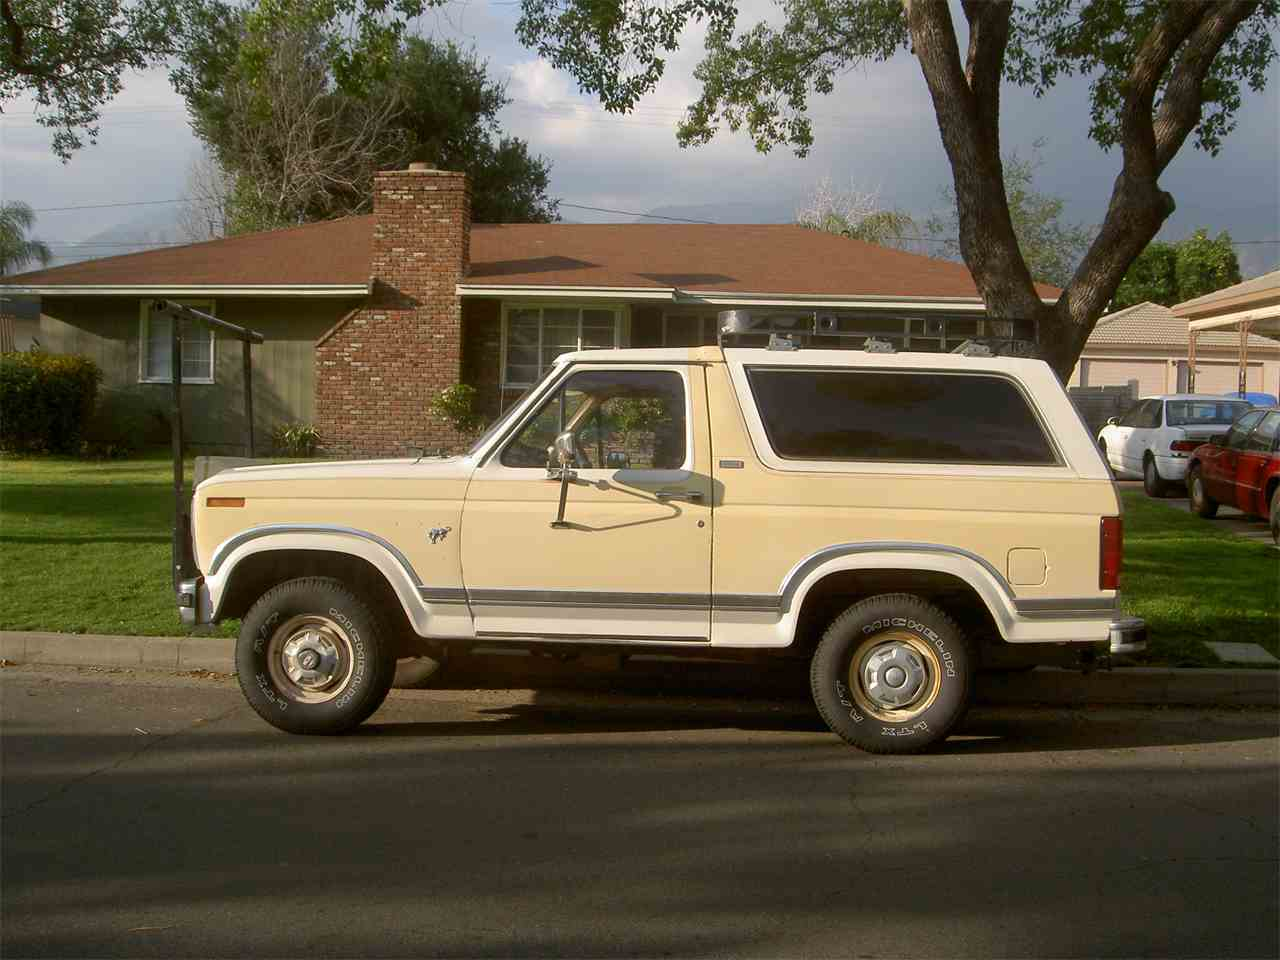 Large Picture of '81 Ford Bronco located in California - $16,000.00 Offered by a Private Seller - N5DO